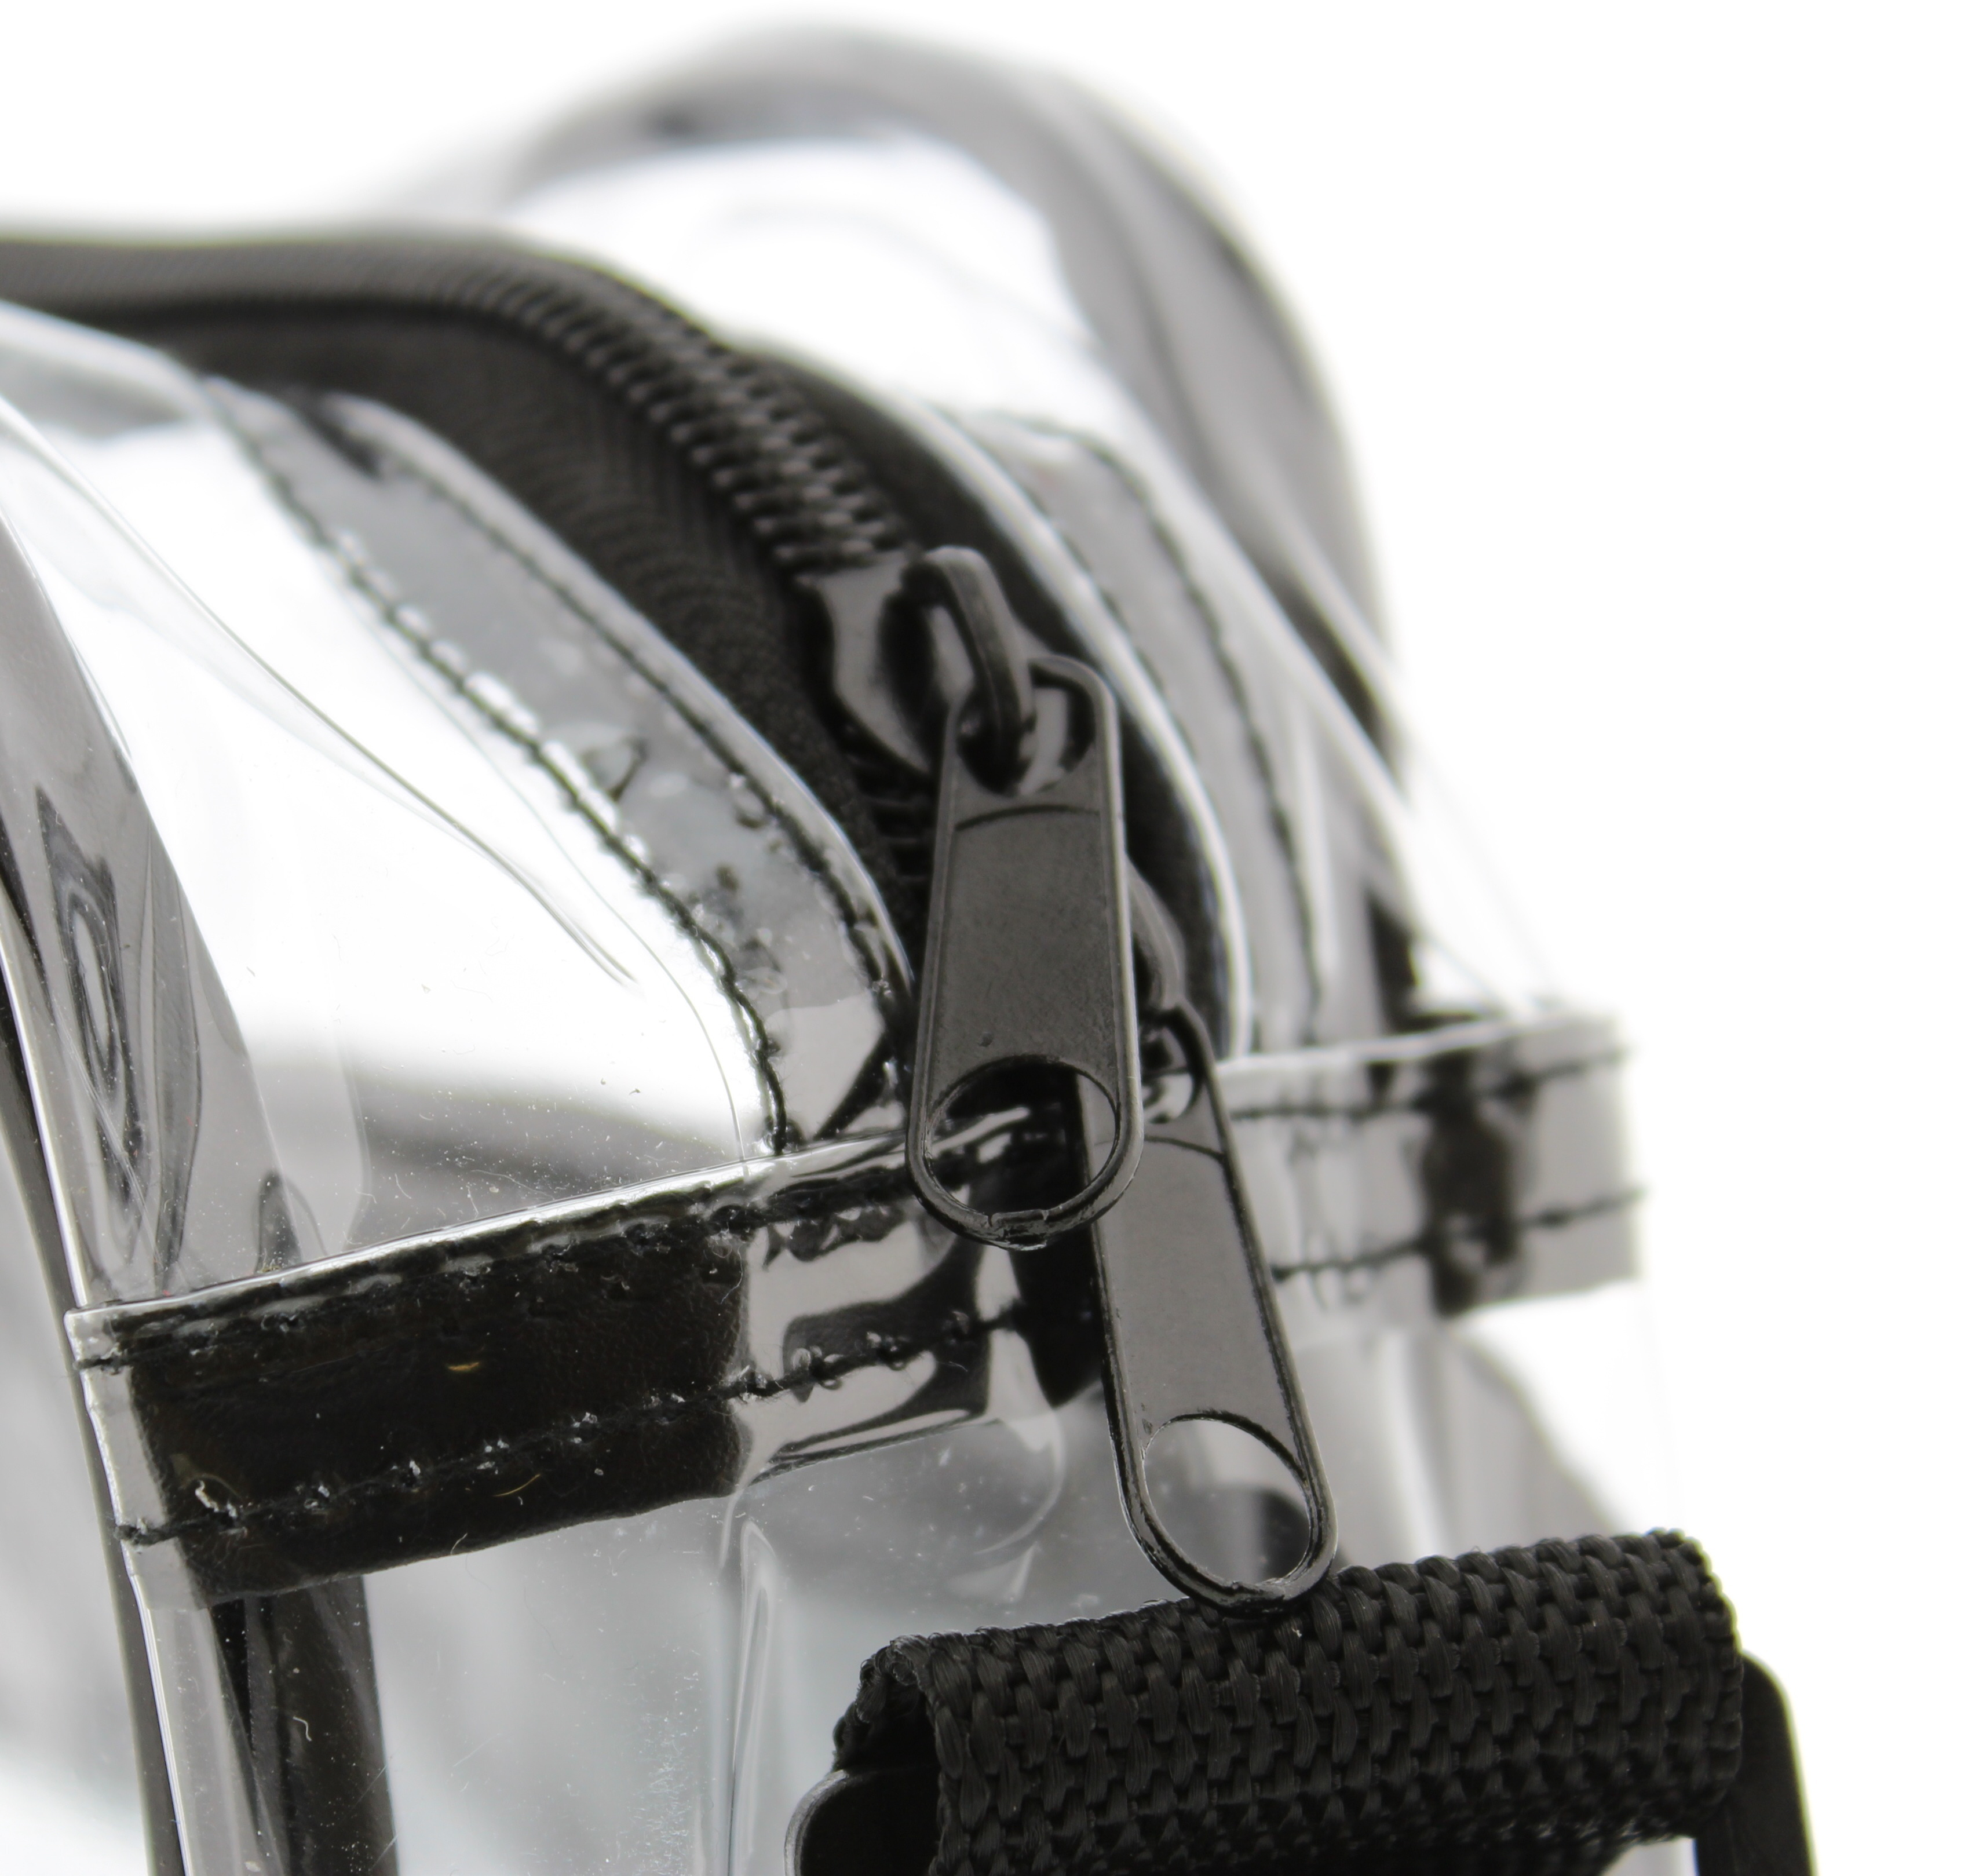 Clear-Purse-NFL-Stadium-Approved-Bag-with-Zipper-and-Shoulder-Strap thumbnail 14